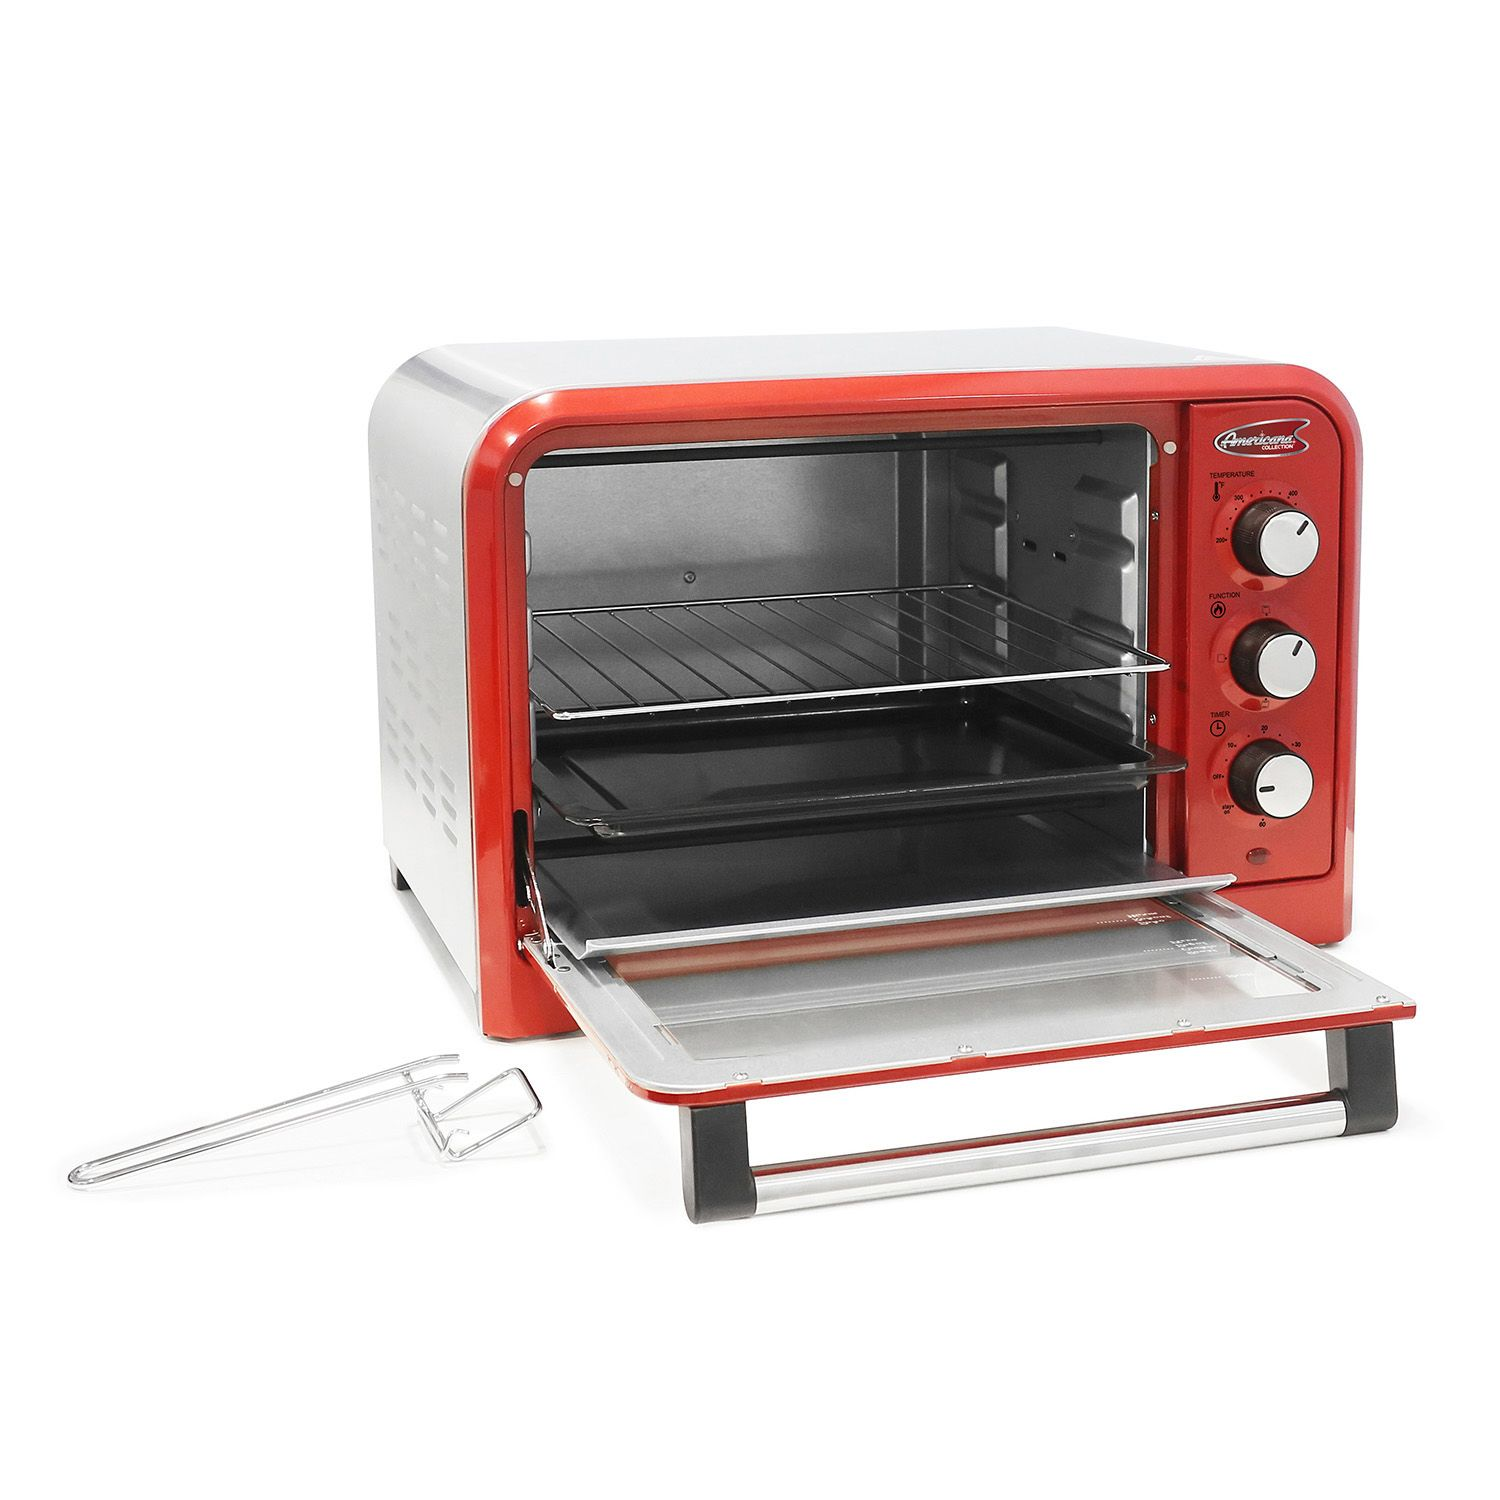 slice toaster steel product hei convection wid oven jsp op for details prod sharpen sale d kenmore stainless red spin